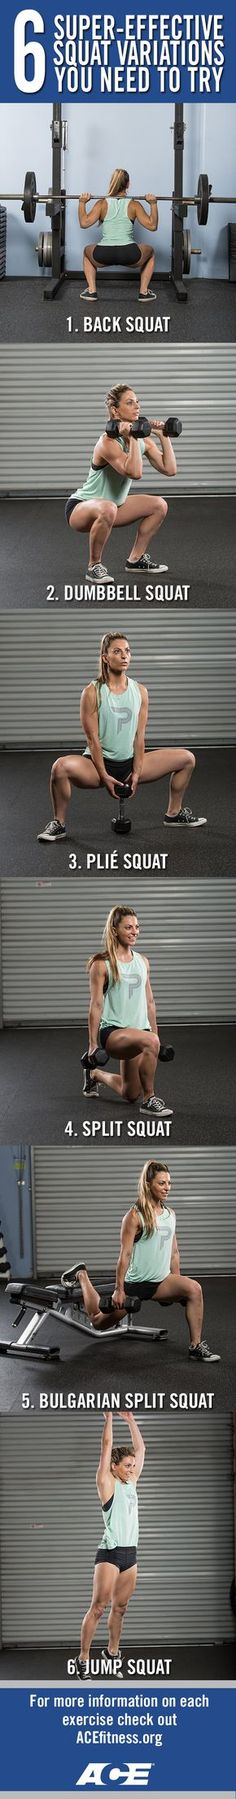 Squats work the glutes, hamstrings, quad, back and core, making it a great total-body exercise. Once you've learned the basics of good form (described here), you'll be ready to move on to these six super-effective squat variations that will do wonders for your strength, flexibility, physique and power. healthandfitnessnewswire.com